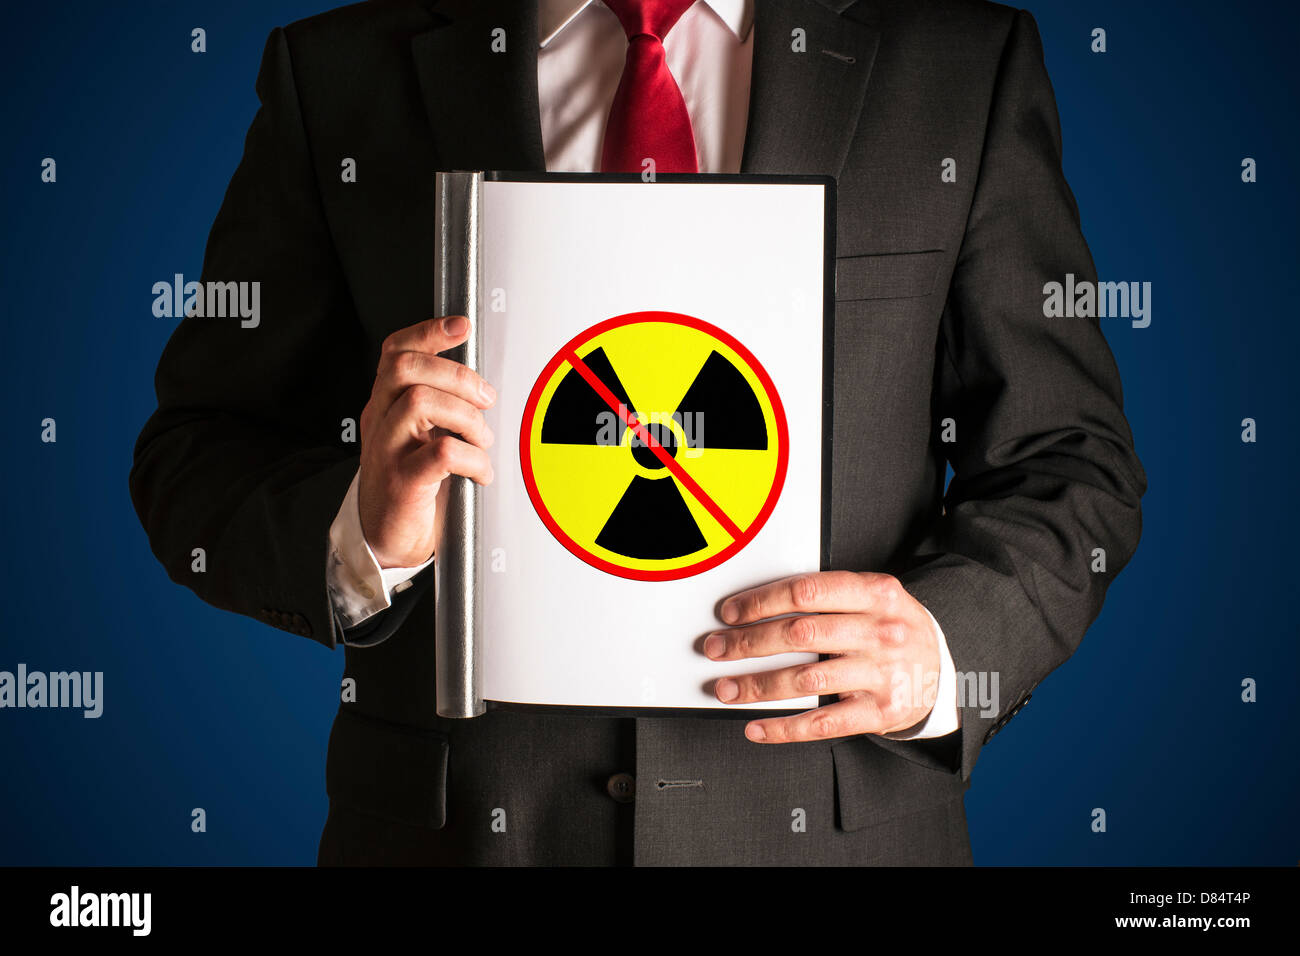 Man in black suite is holding a folder with sign no atomic power - Stock Image